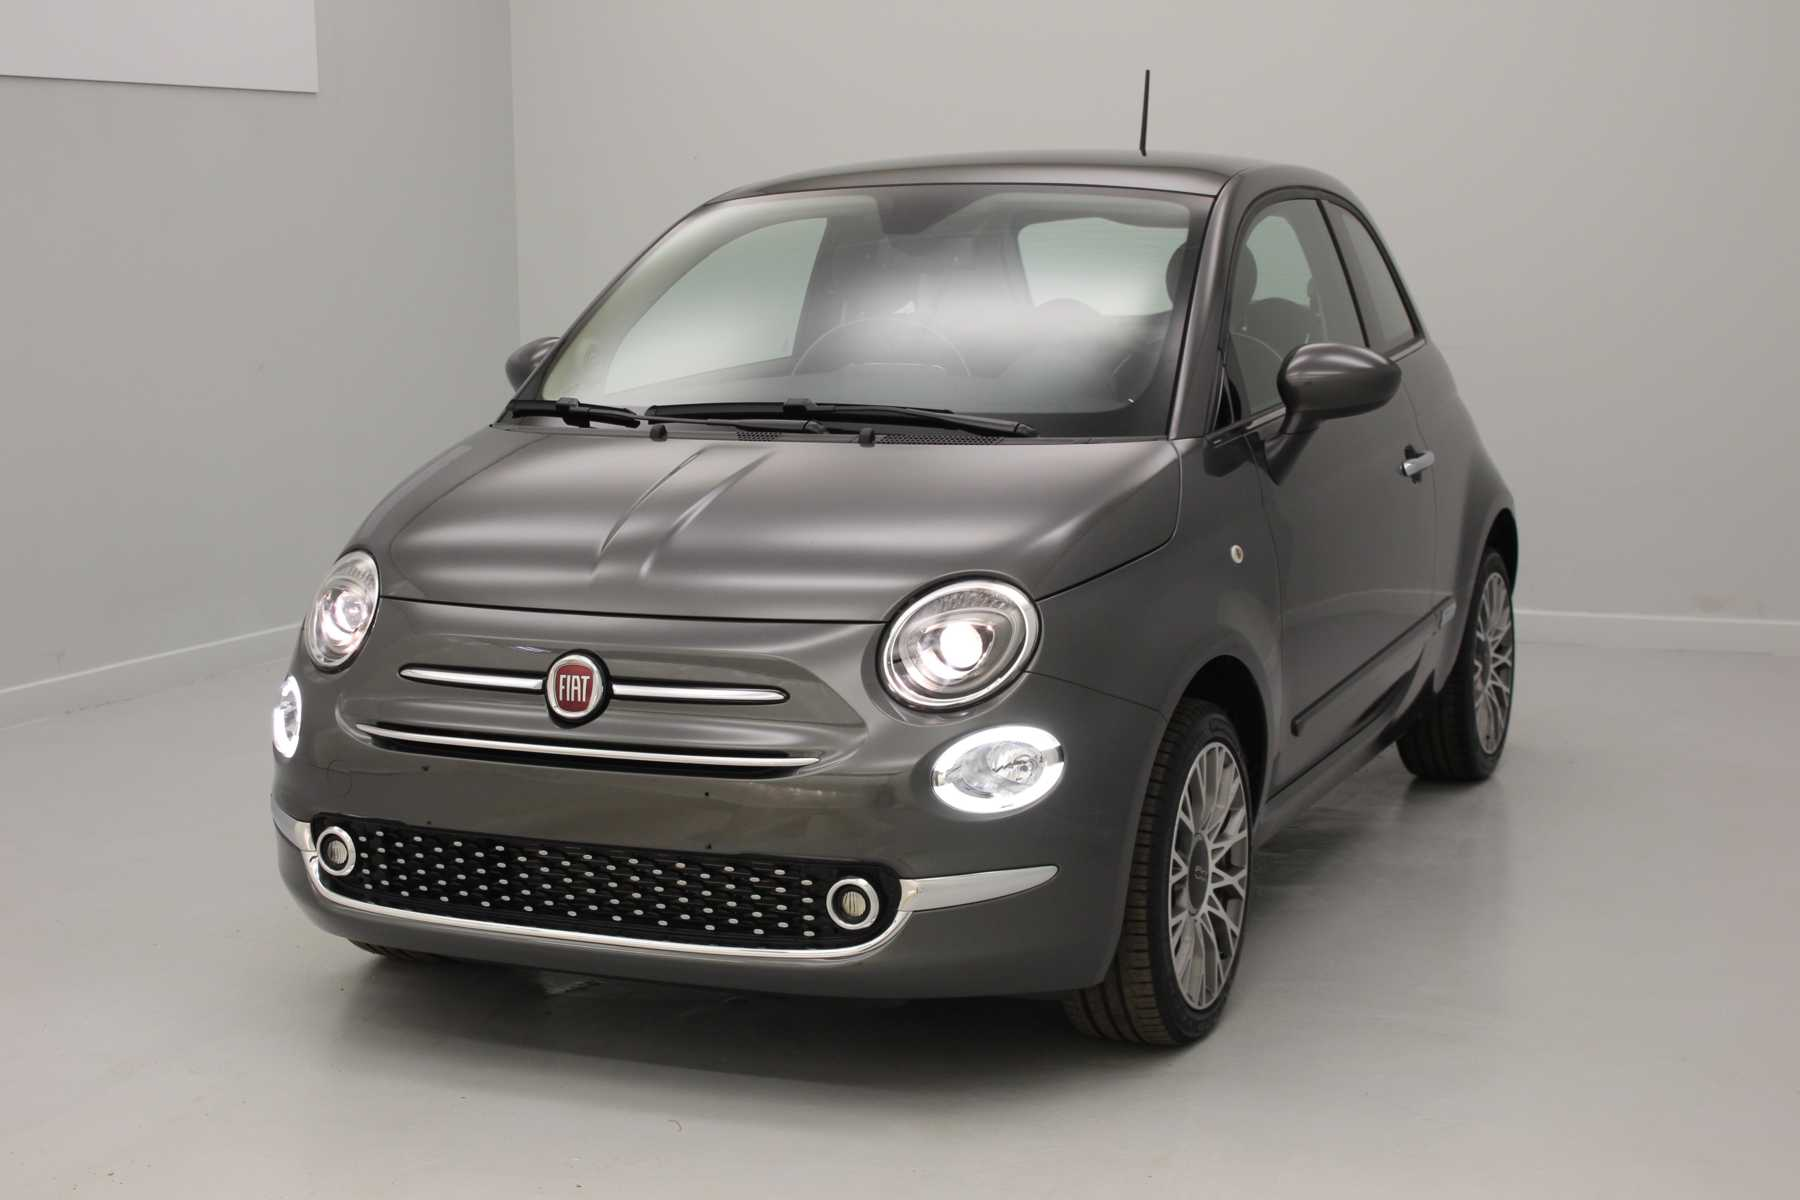 FIAT 500 1.2 69 ch Lounge Eco Pack Groove Metal Grey + Climatisation automatique avec options